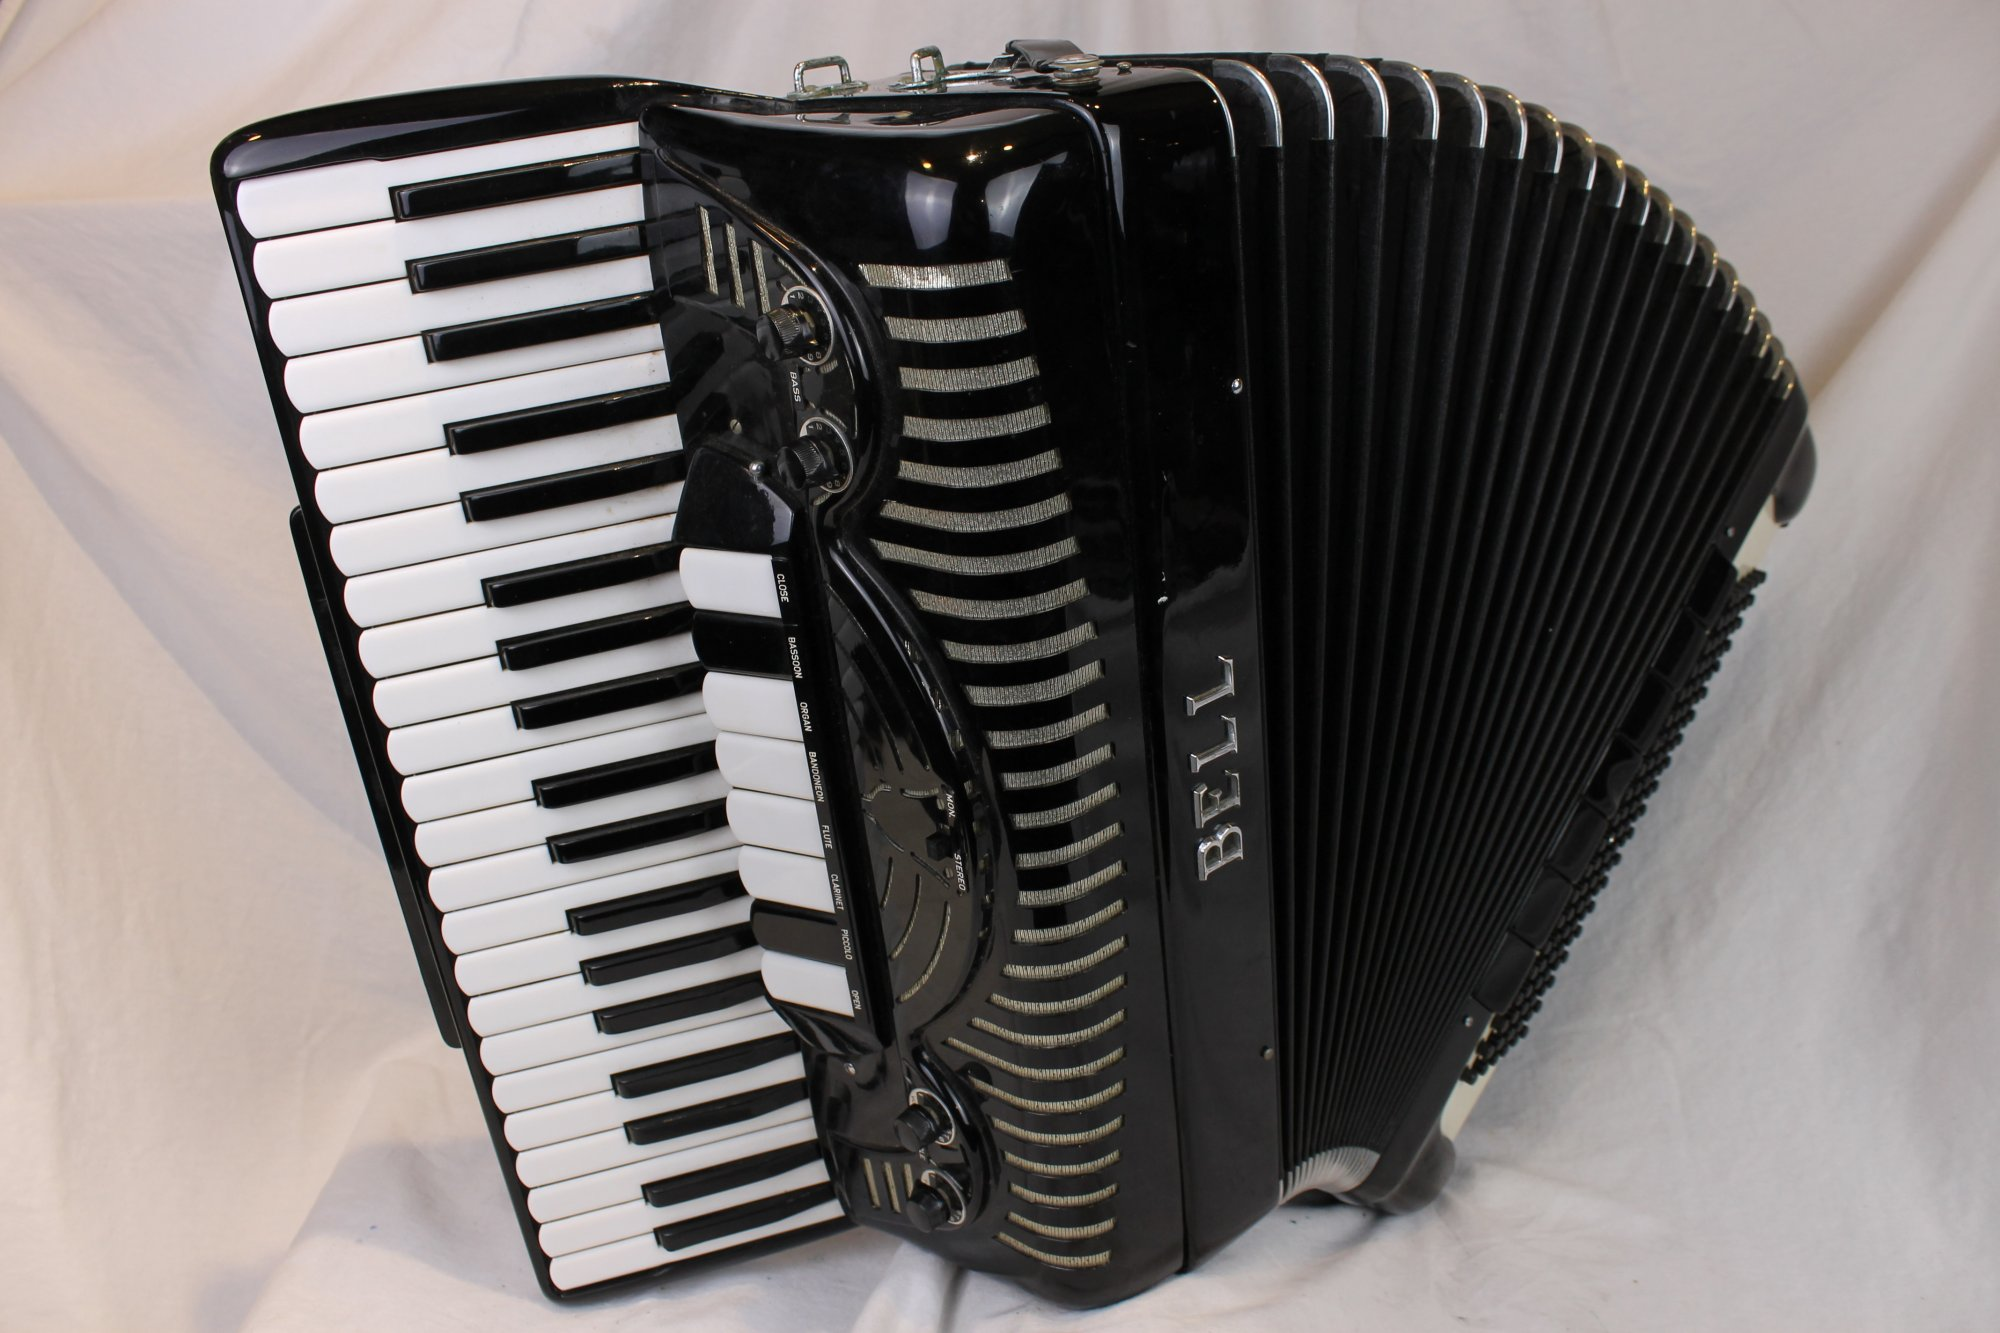 3844 - Black Bell Starlet Piano Accordion LMH 41 120